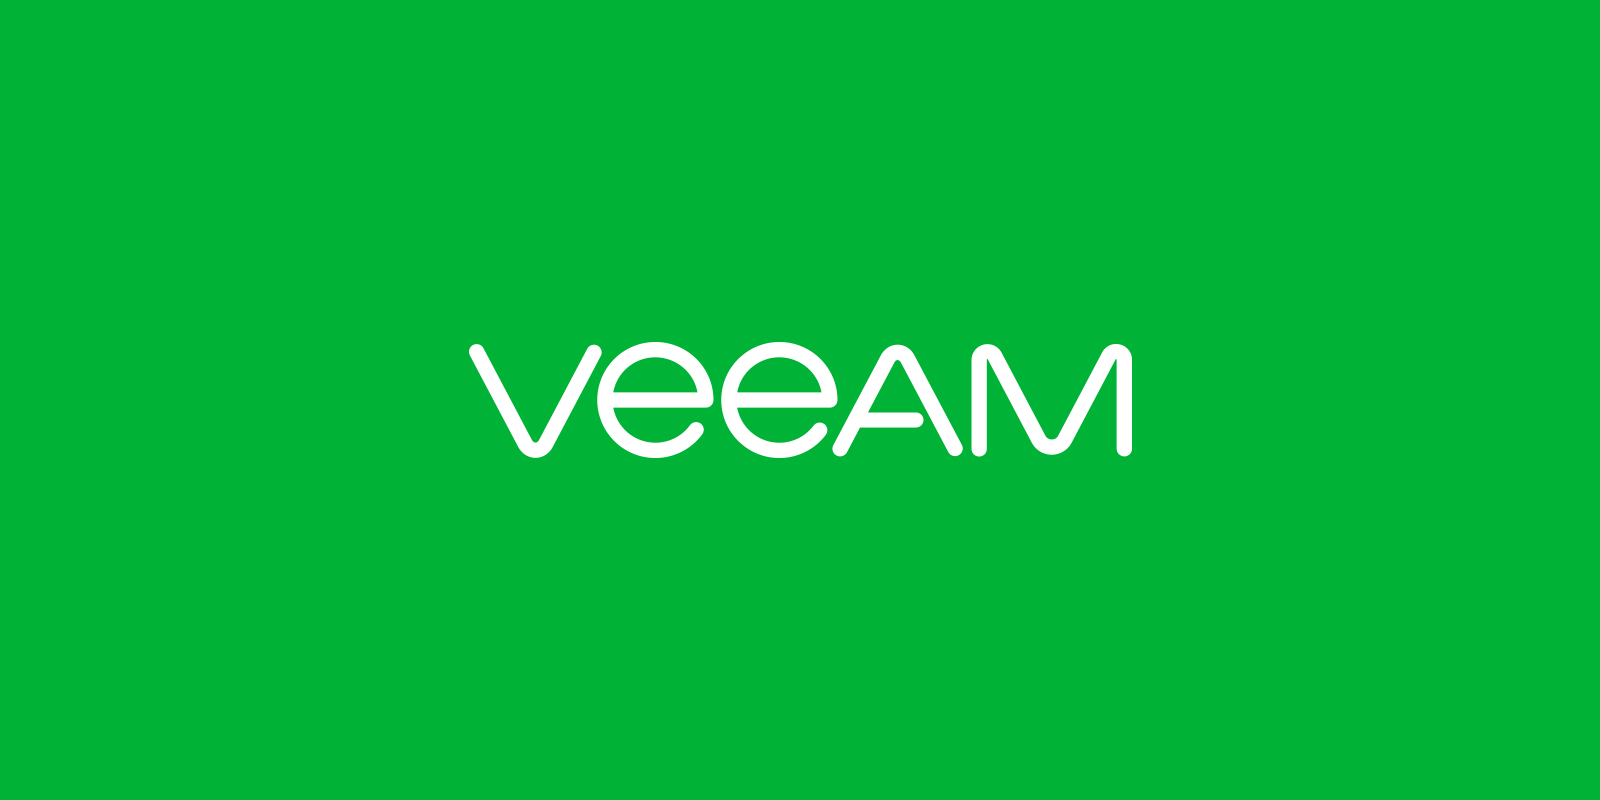 forums.veeam.com